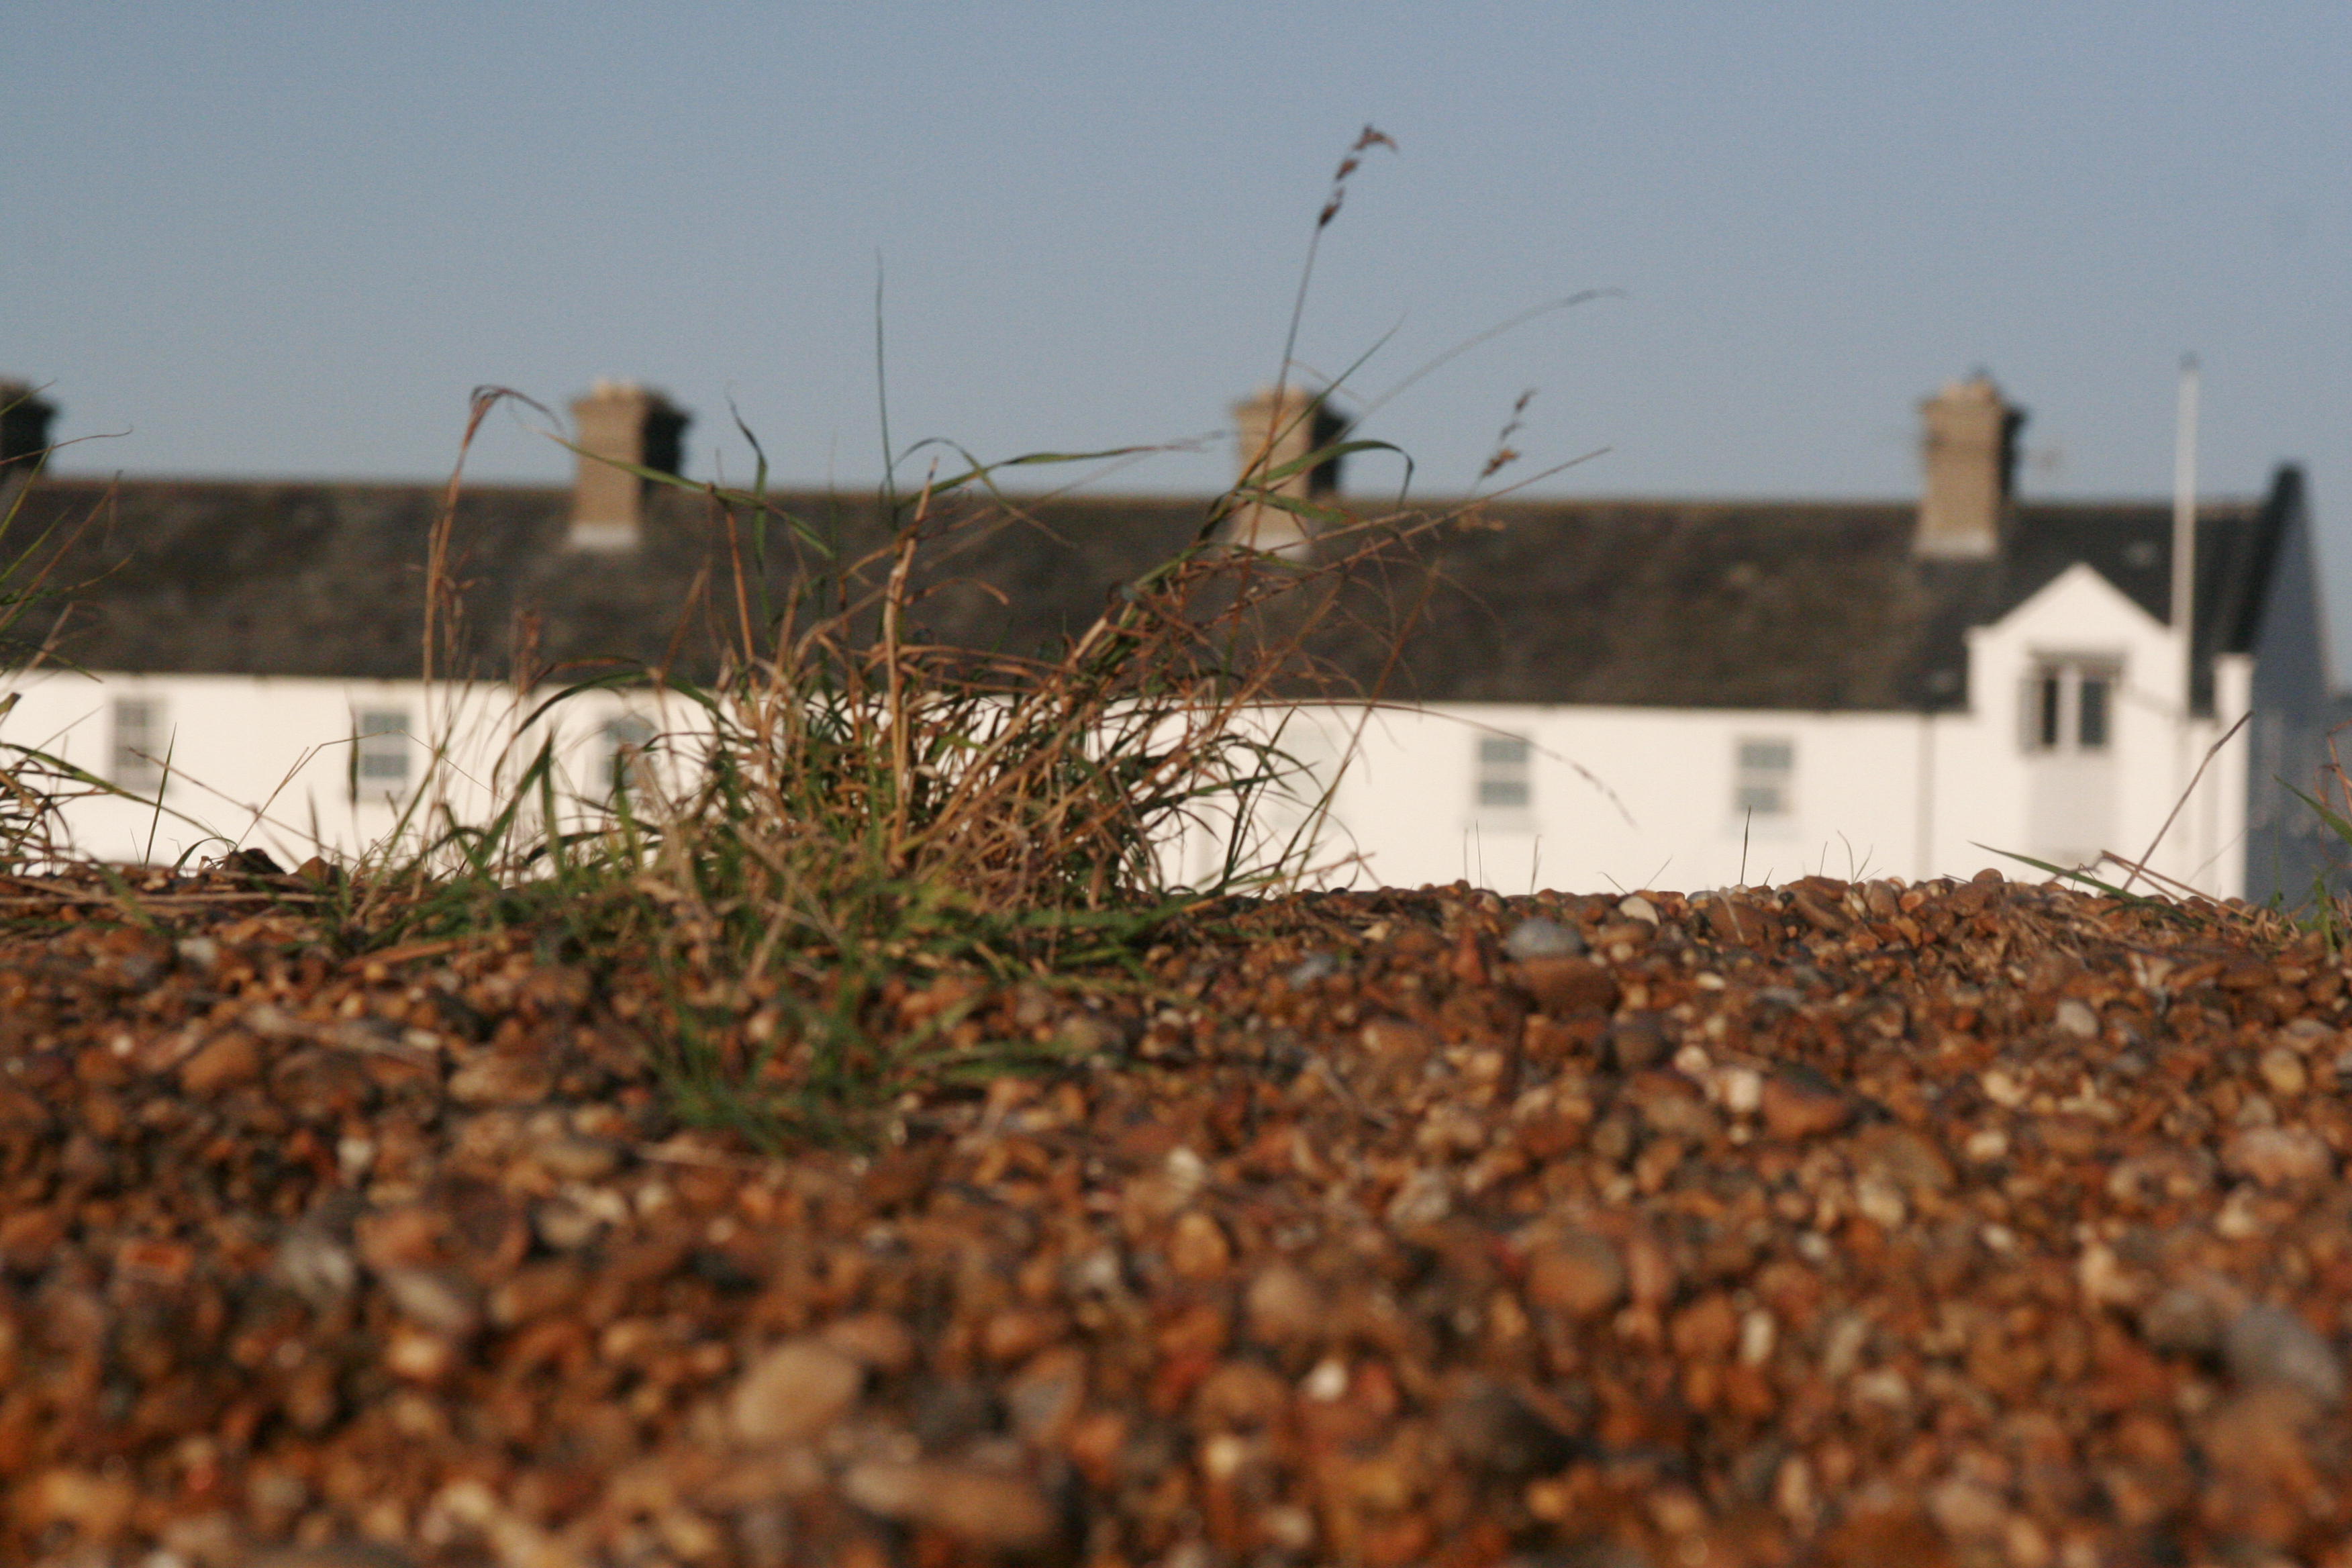 A shingle bank near Hollesley